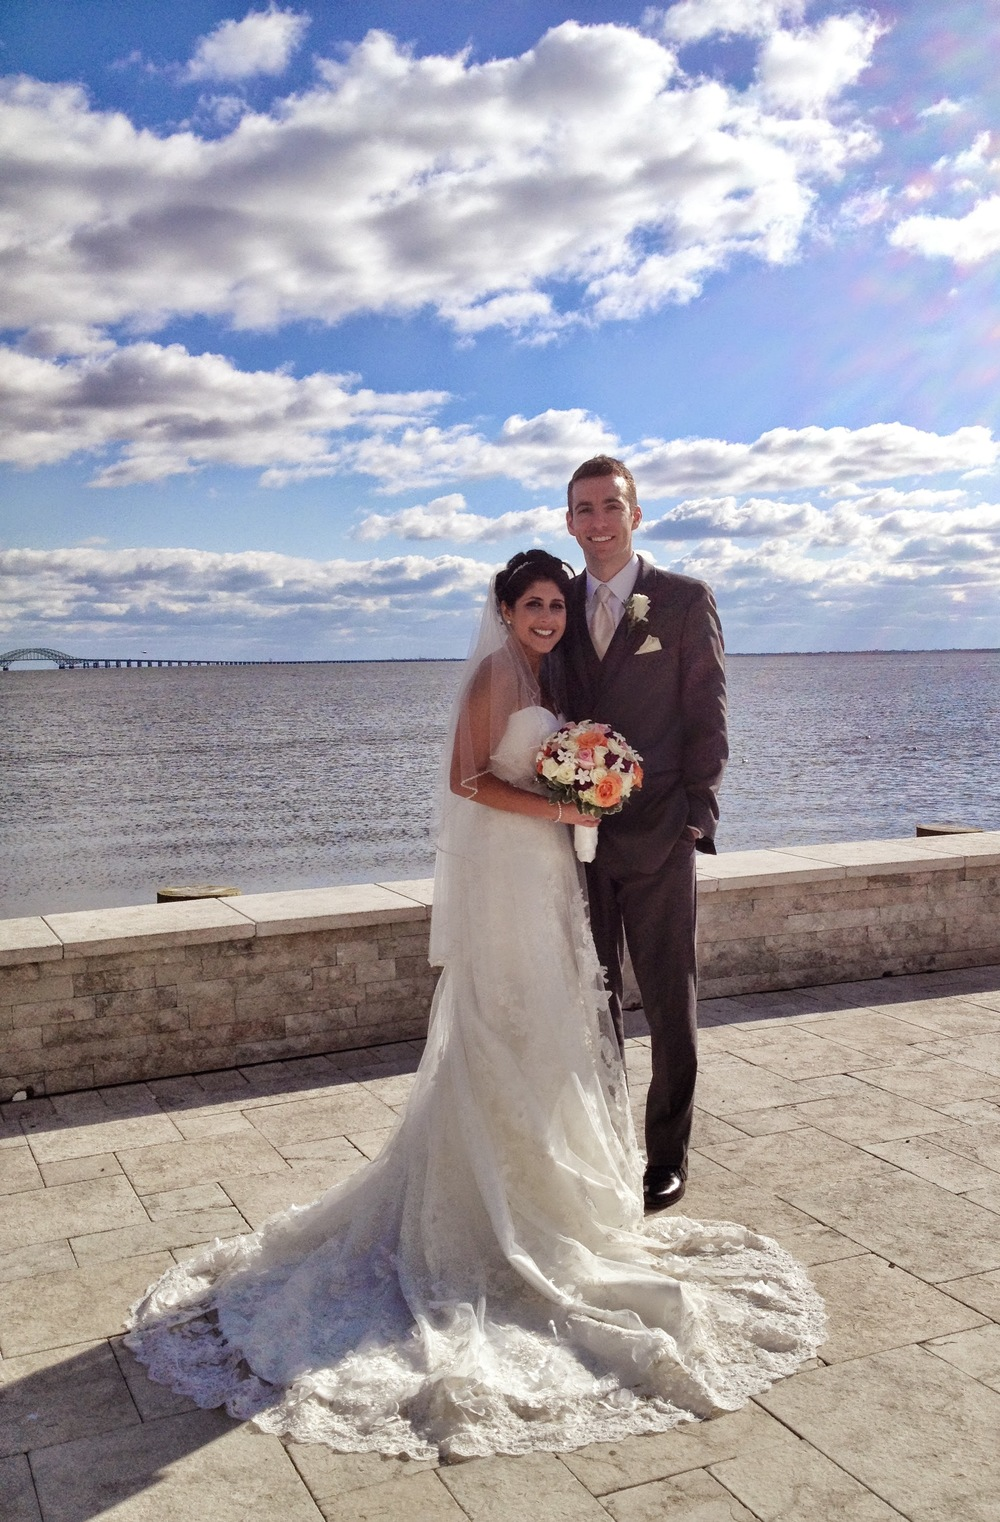 Michelle And Paul Exchange Vows At The Venetian Yacht Club Feb 23 2016 Real Weddings Long Island